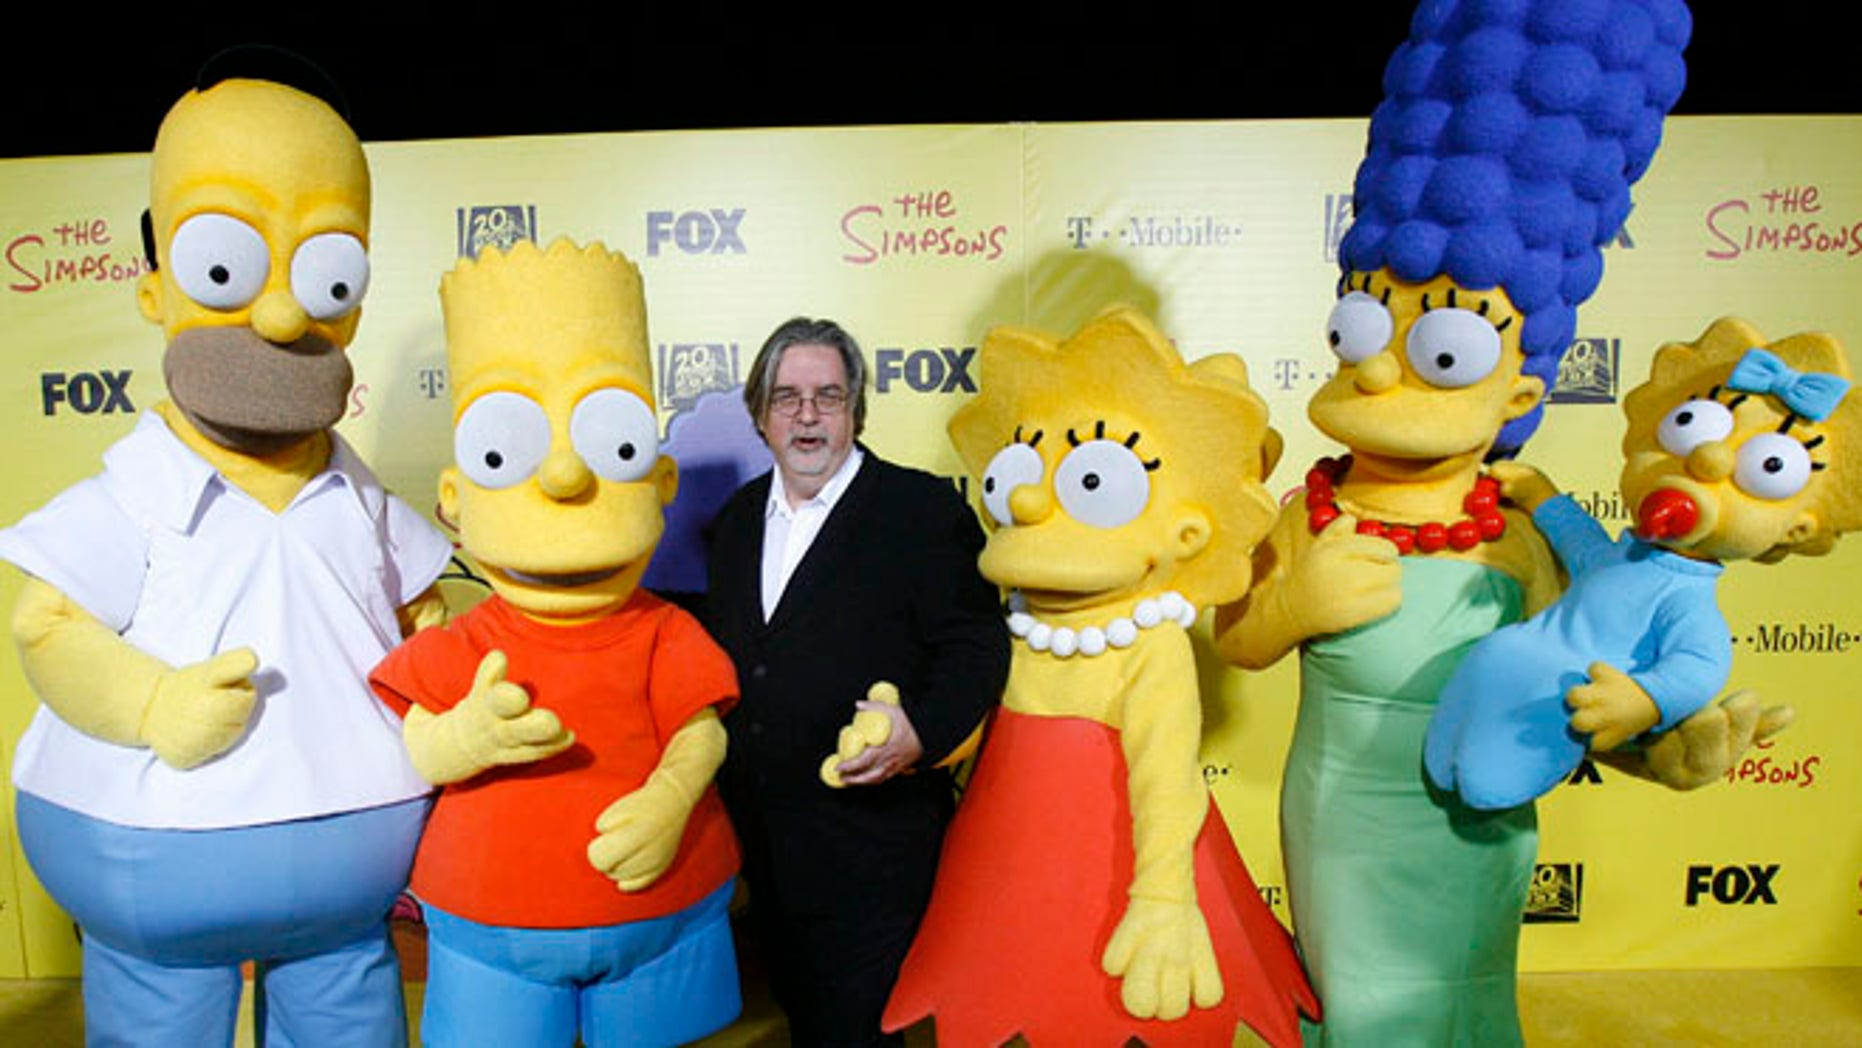 Oct. 18, 2009: Matt Groening (C), creator of The Simpsons, poses with characters from the show (L-R) Homer, Bart, Lisa, Marge and Maggie at the 20th anniversary party for the television series at Barker hangar in Santa Monica, California. (Reuters)